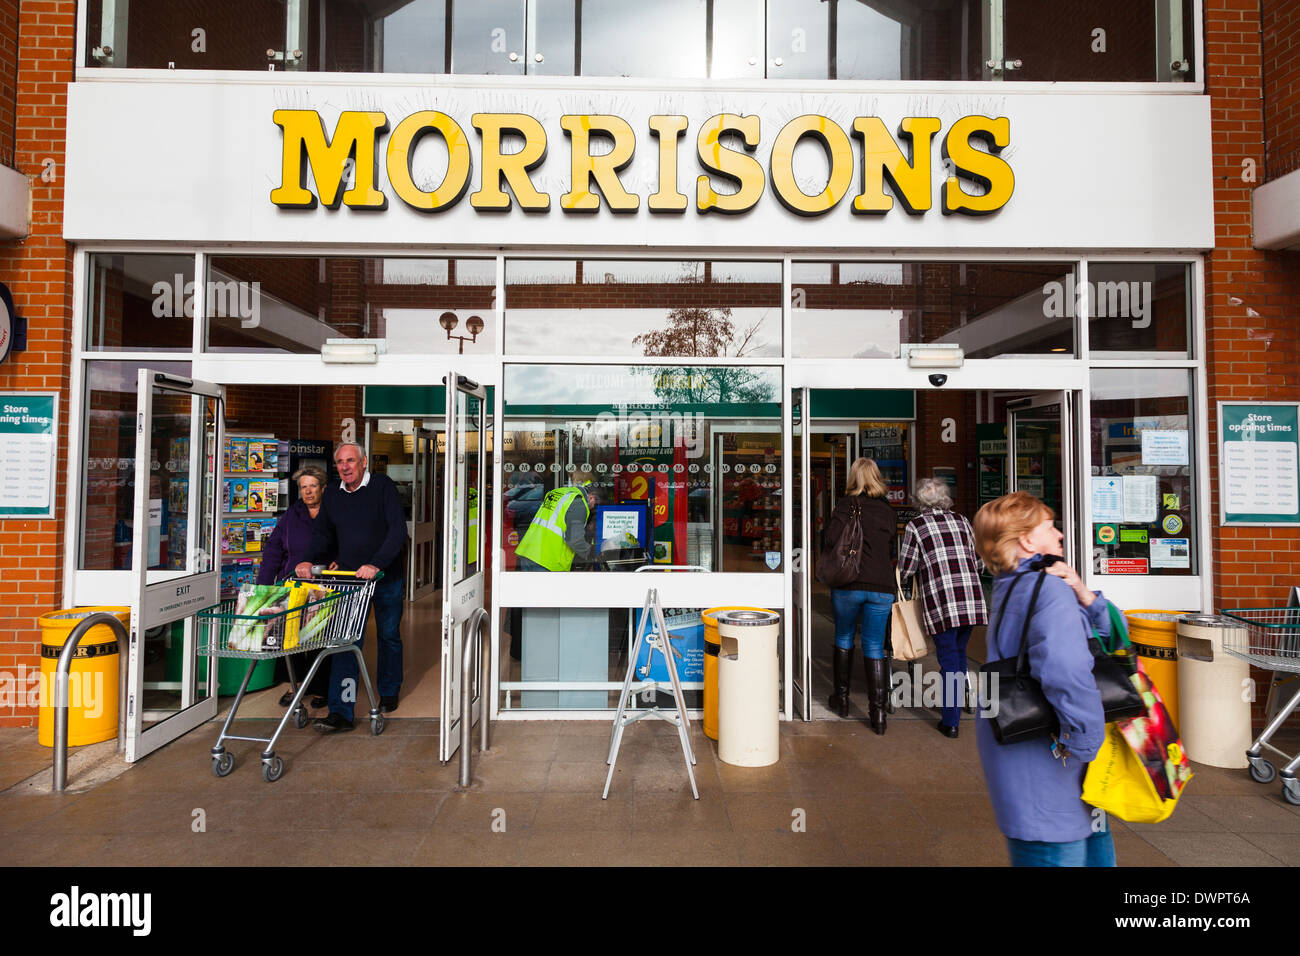 Customers entering and leaving a Morrisons Supermarket. - Stock Image